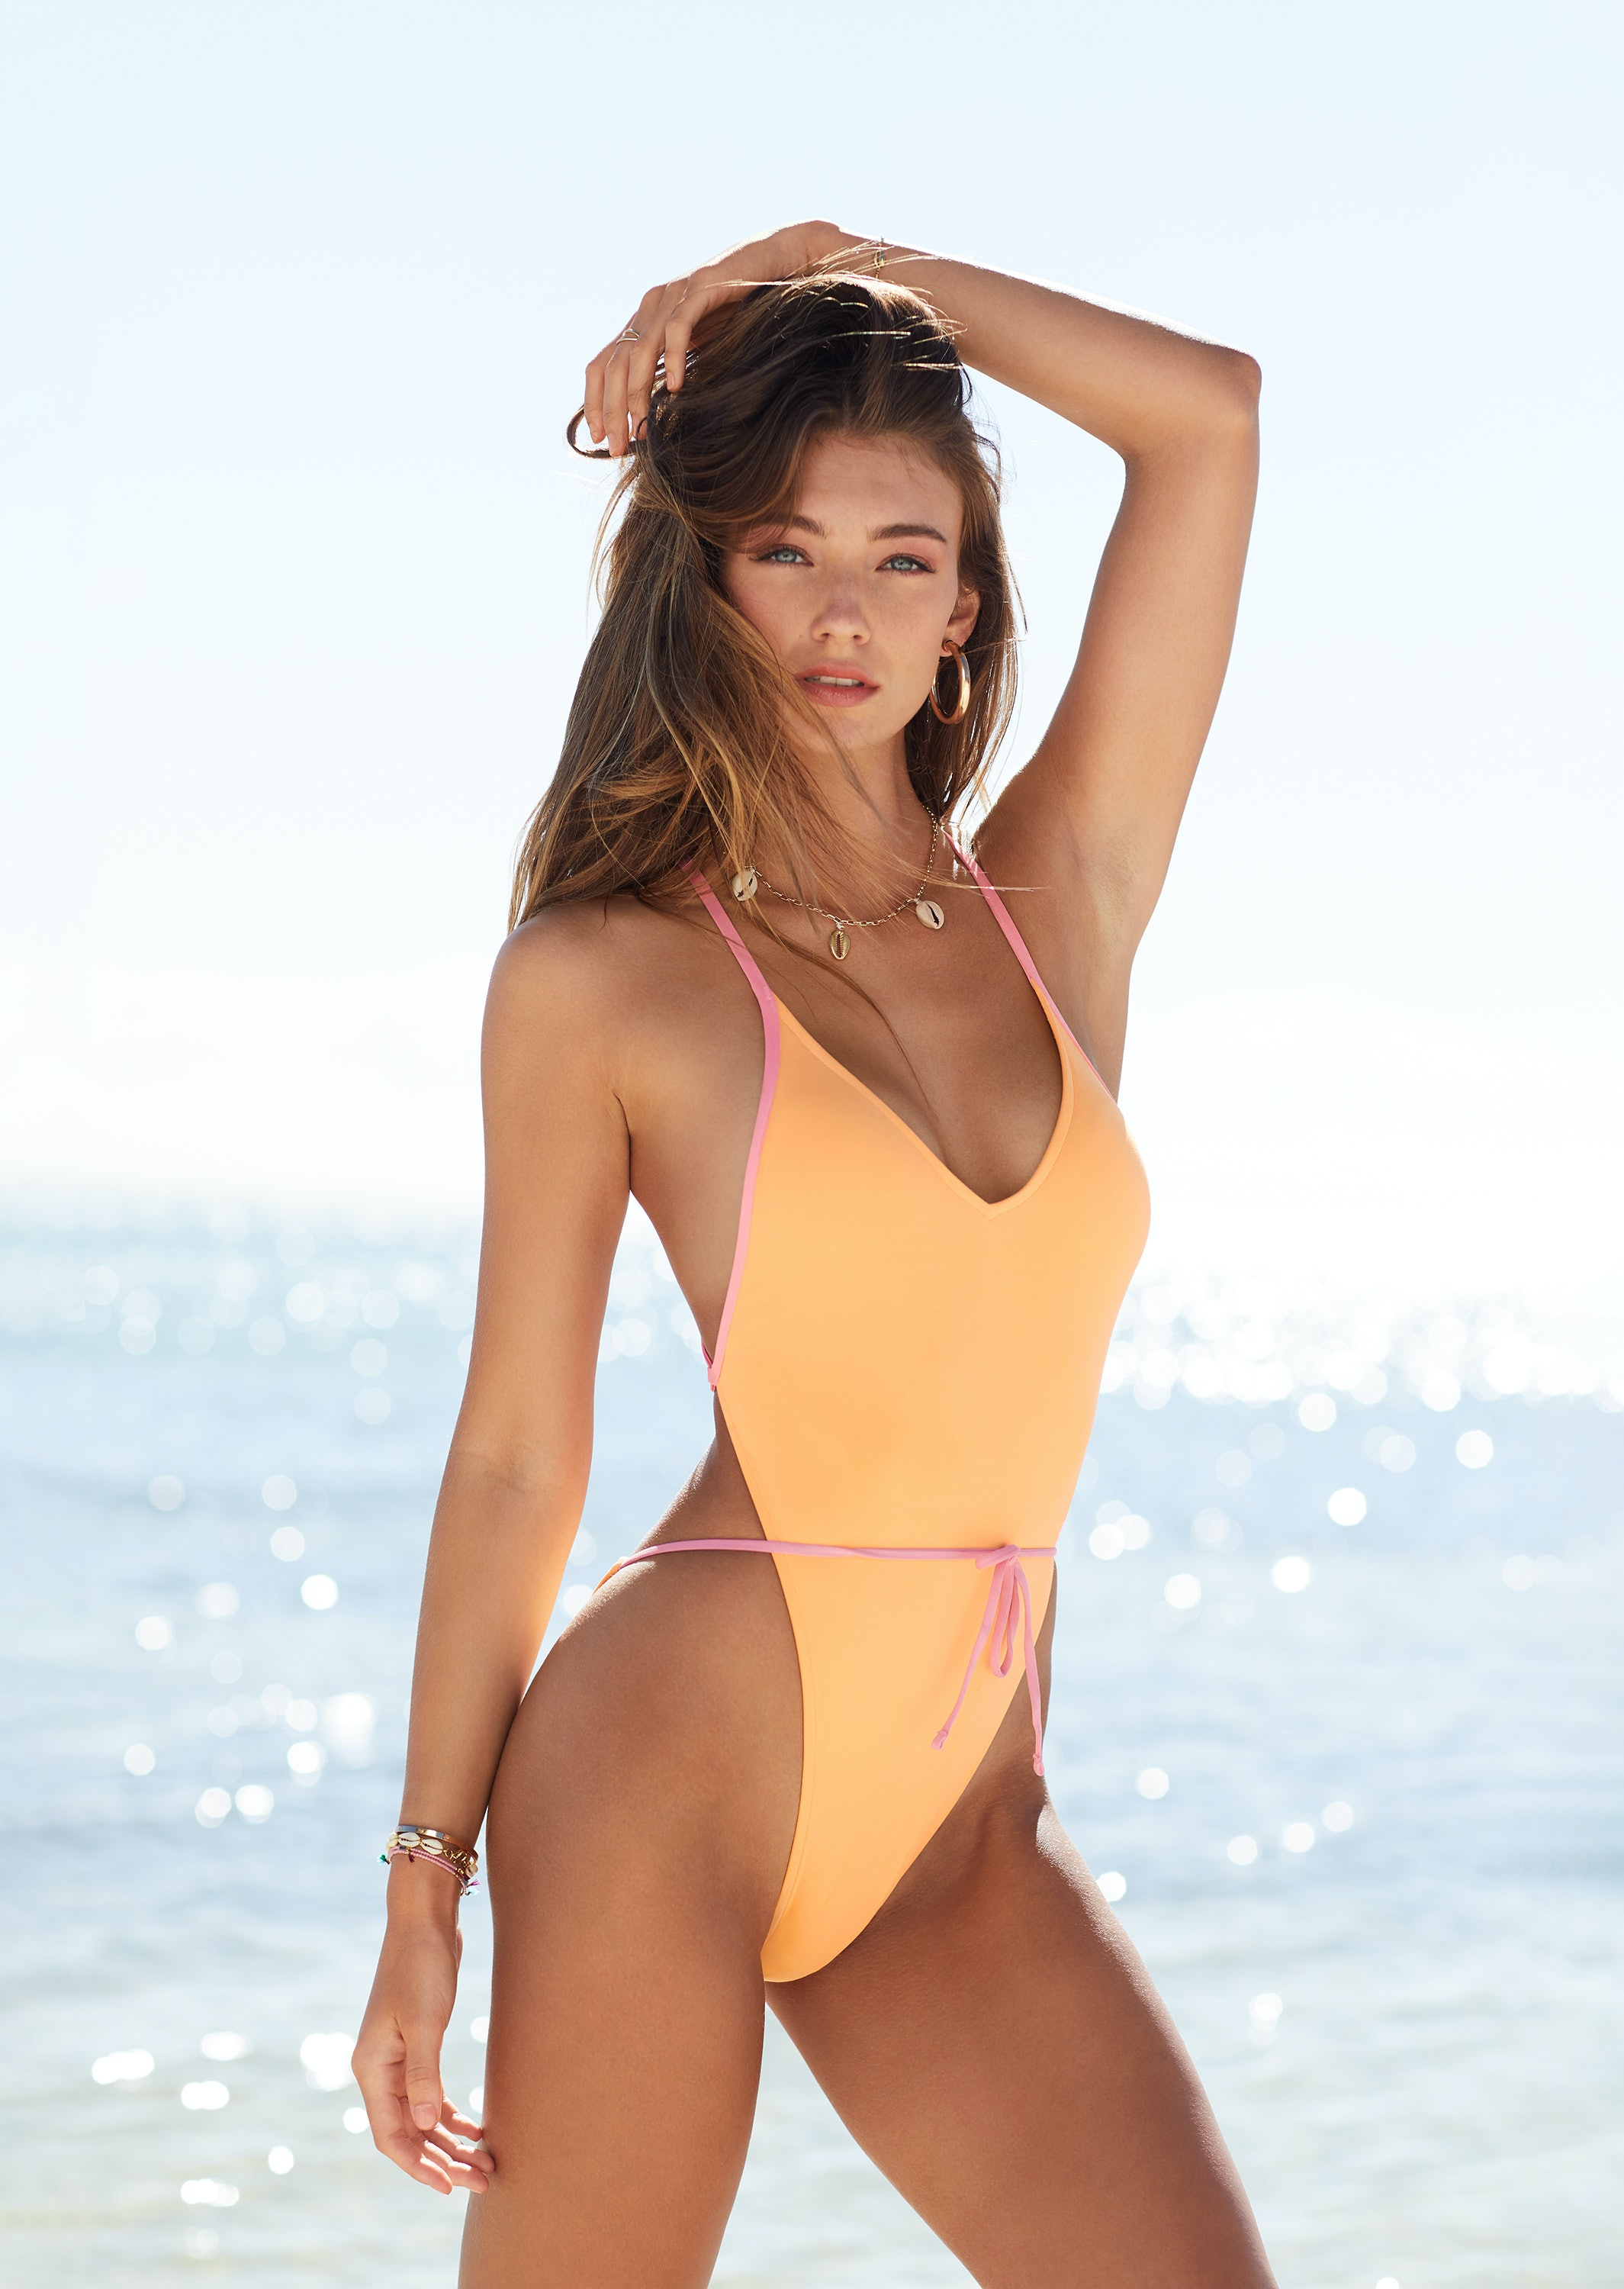 e815f73e42843 Victoria's Secret Is Relaunching Swim Online Just In Time For Spring